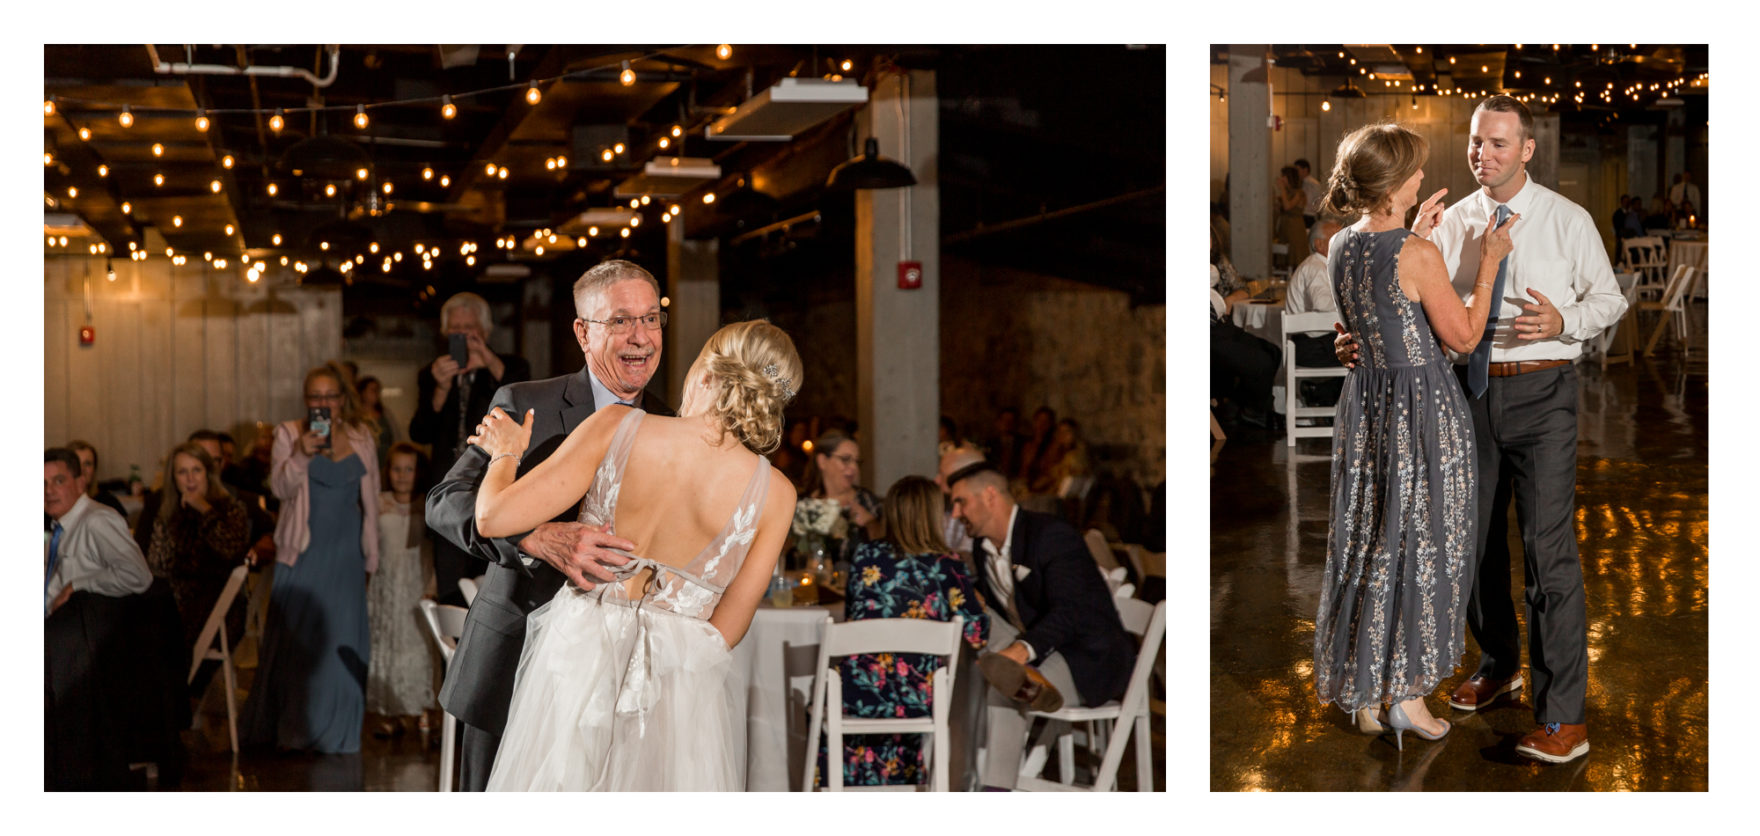 Old Ellicott City Wedding. Main Street Ellicott City Wedding. Ellicott City Strong. Main Street Ballroom. Ballroom Wedding. Rustic Ballroom. Fall Wedding. Warm Fall Wedding. Dusty Blue Wedding. Howard County Wedding. Howard County Photographer. Ellicott City Photographer.